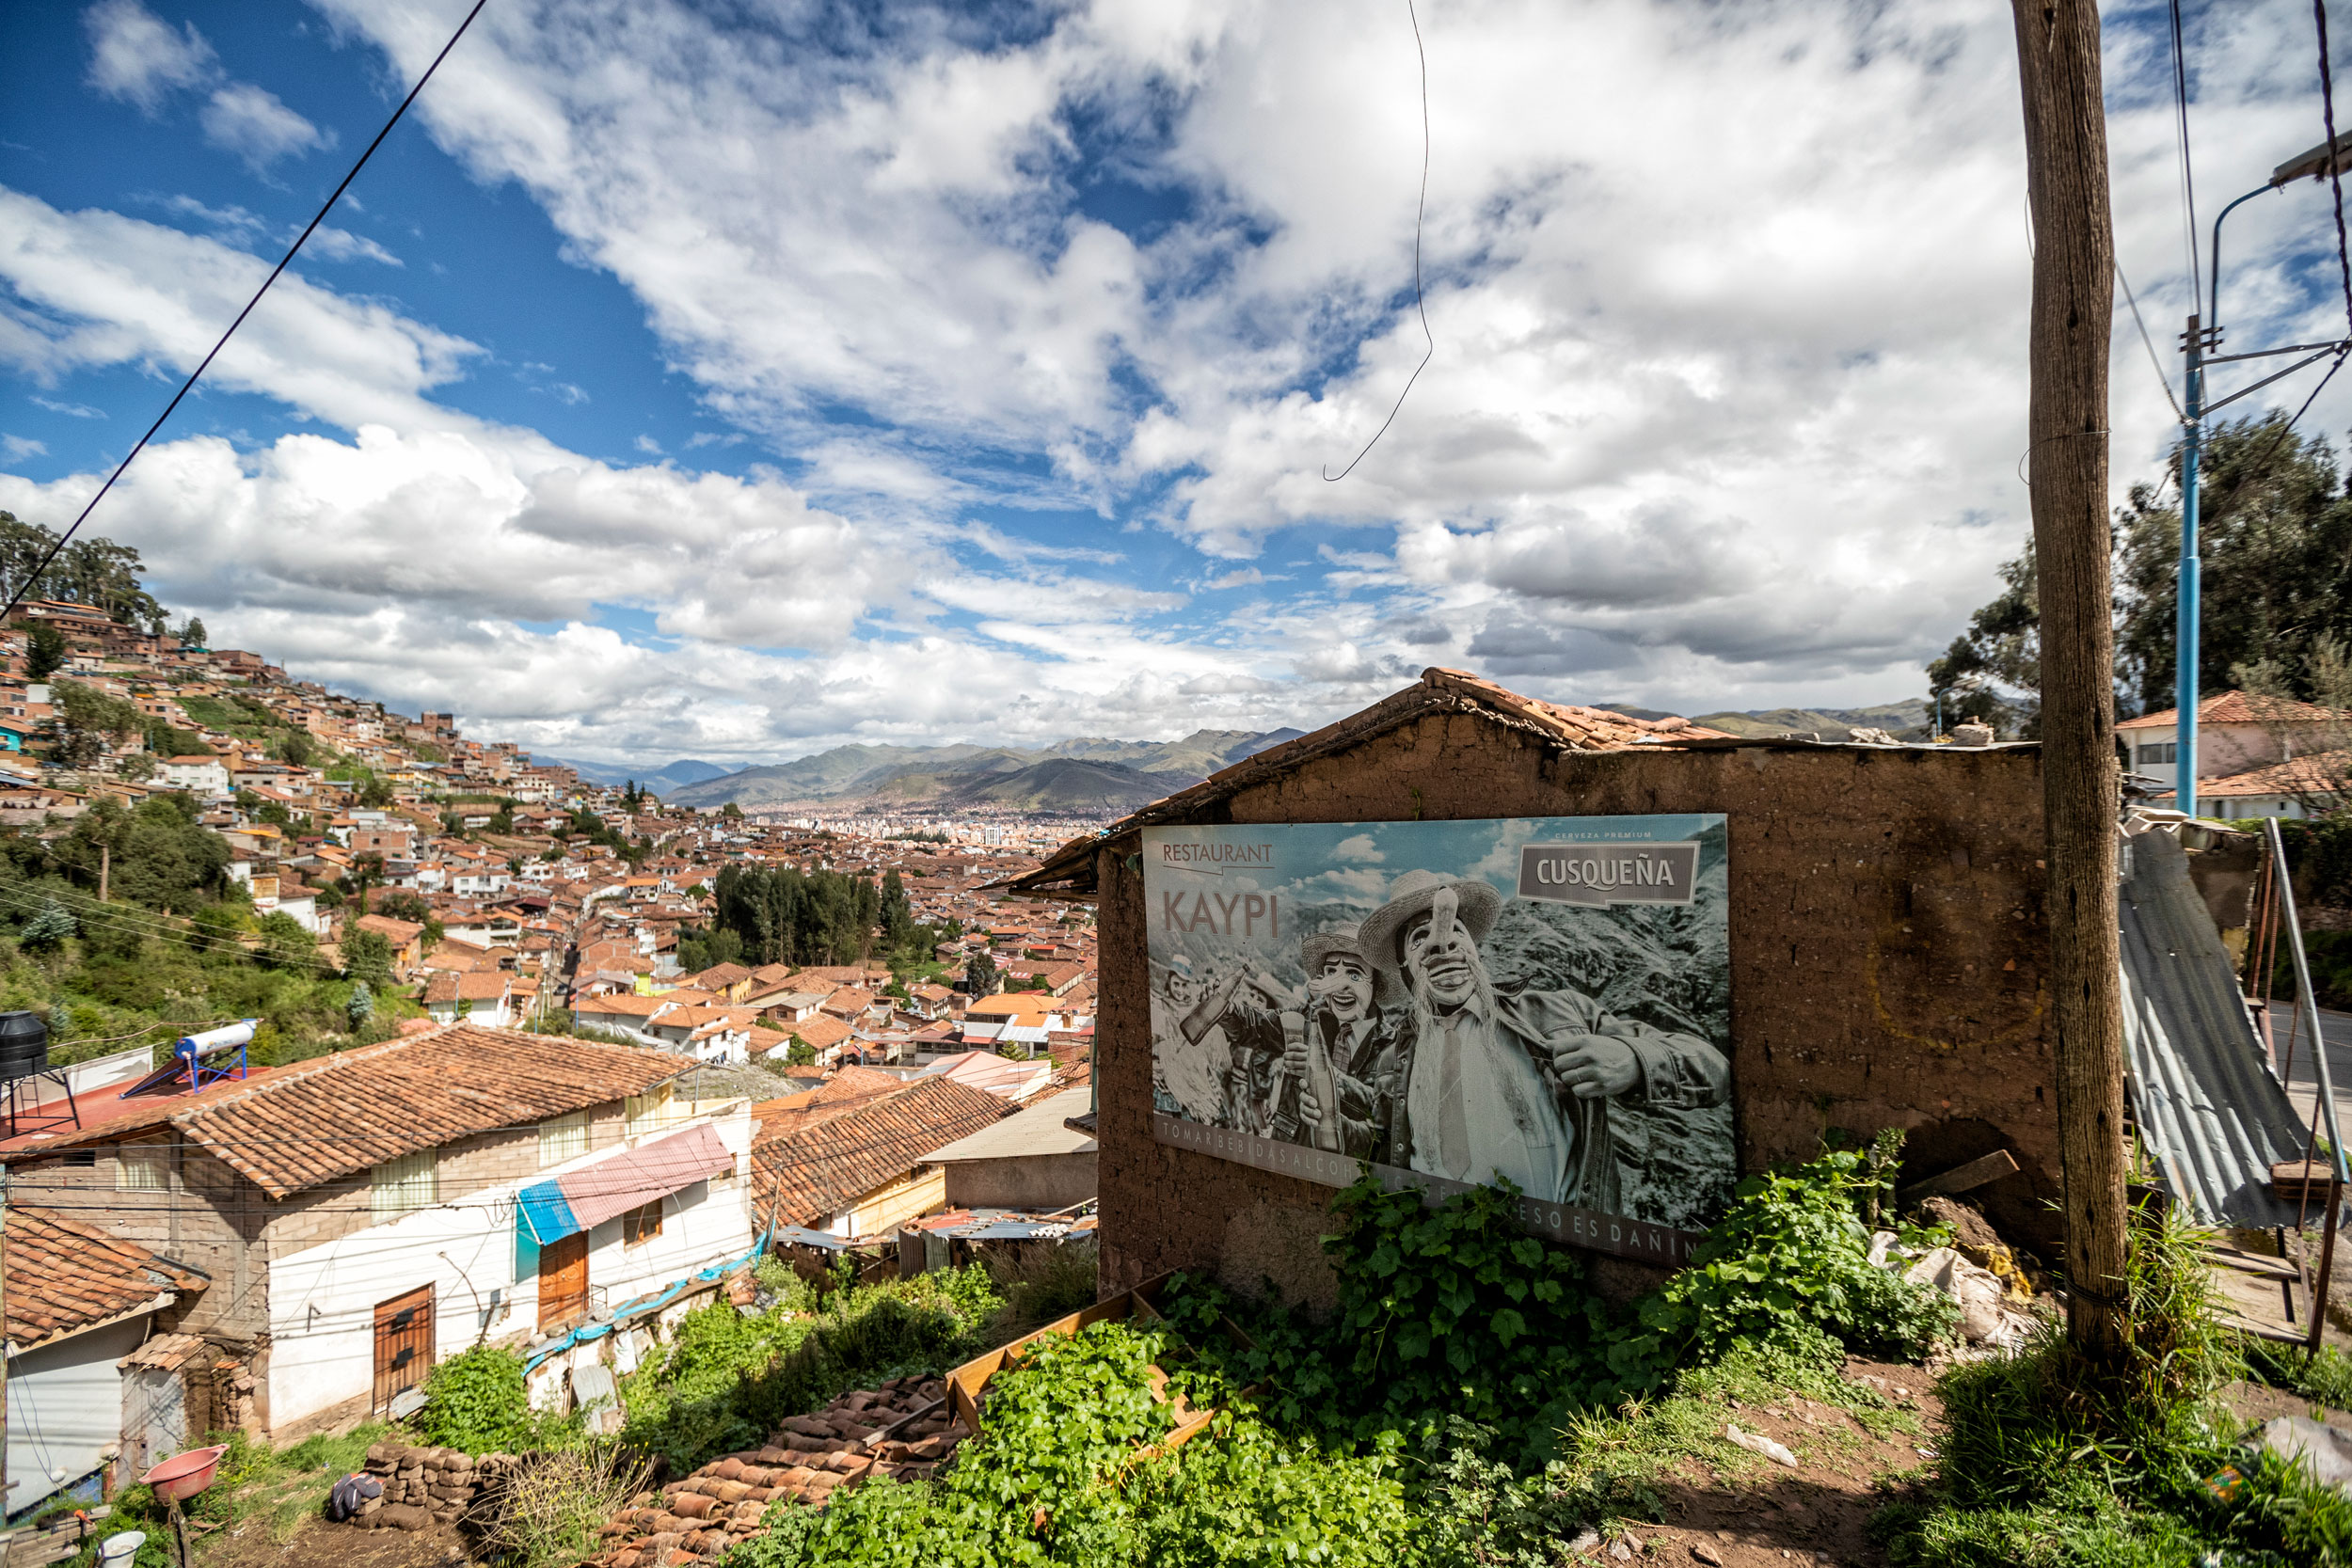 Cusco_5_web